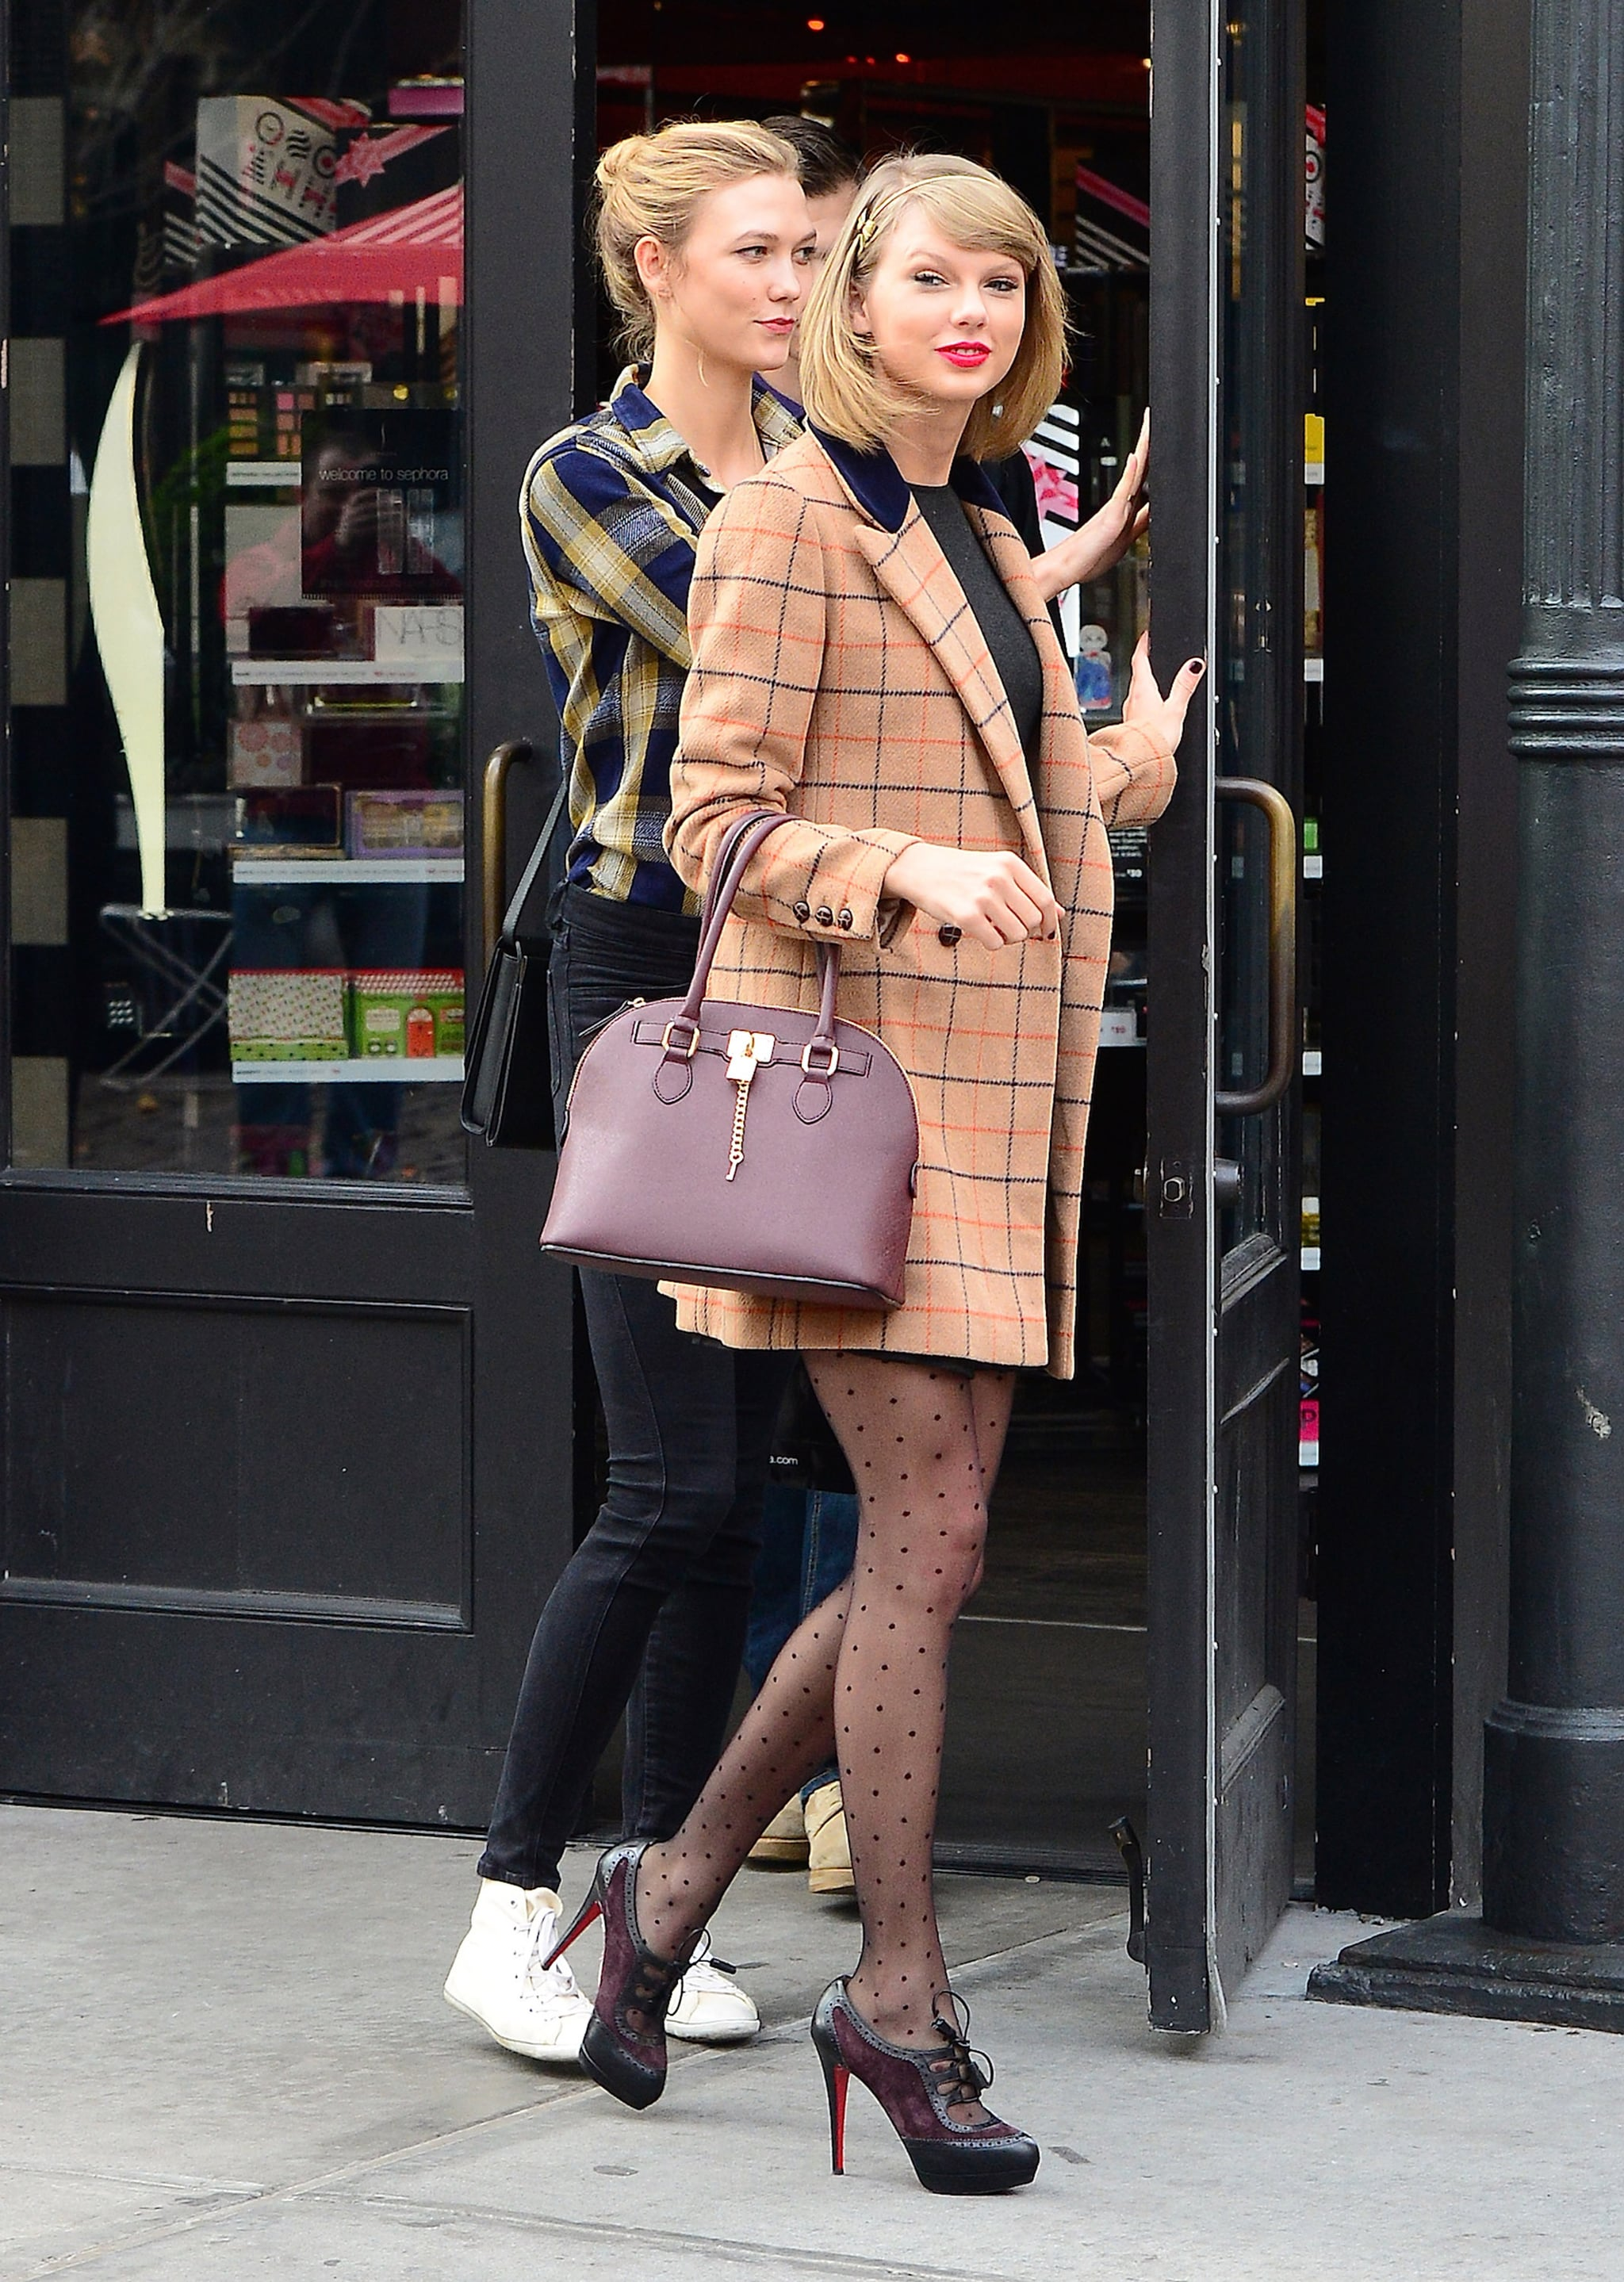 Taylor Swift S Aldo Bag Popsugar Fashion